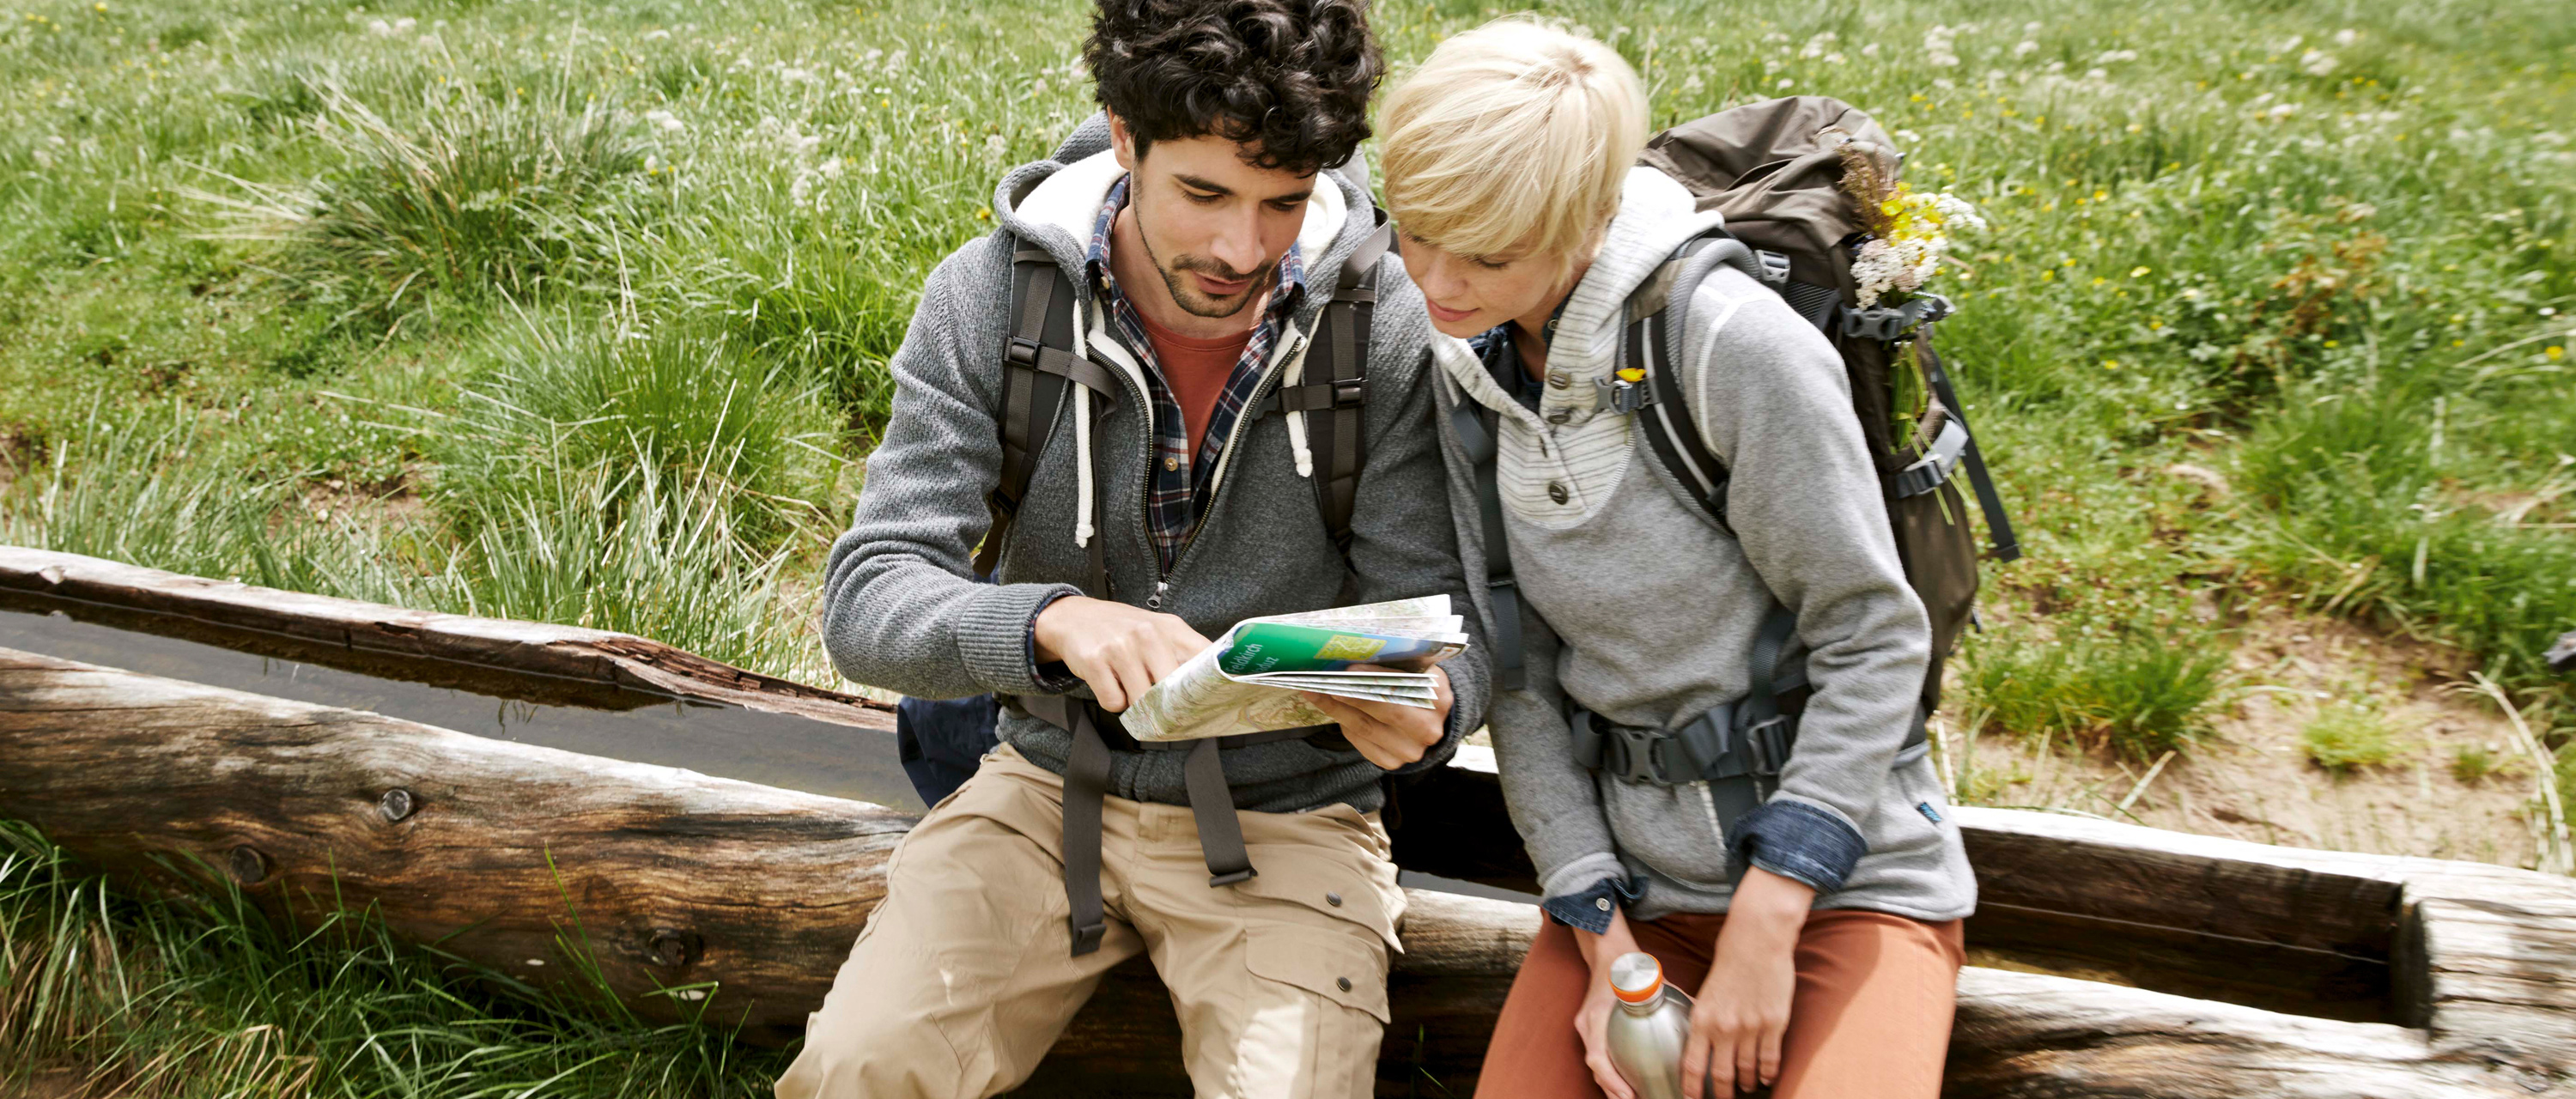 Couple studying hiking map